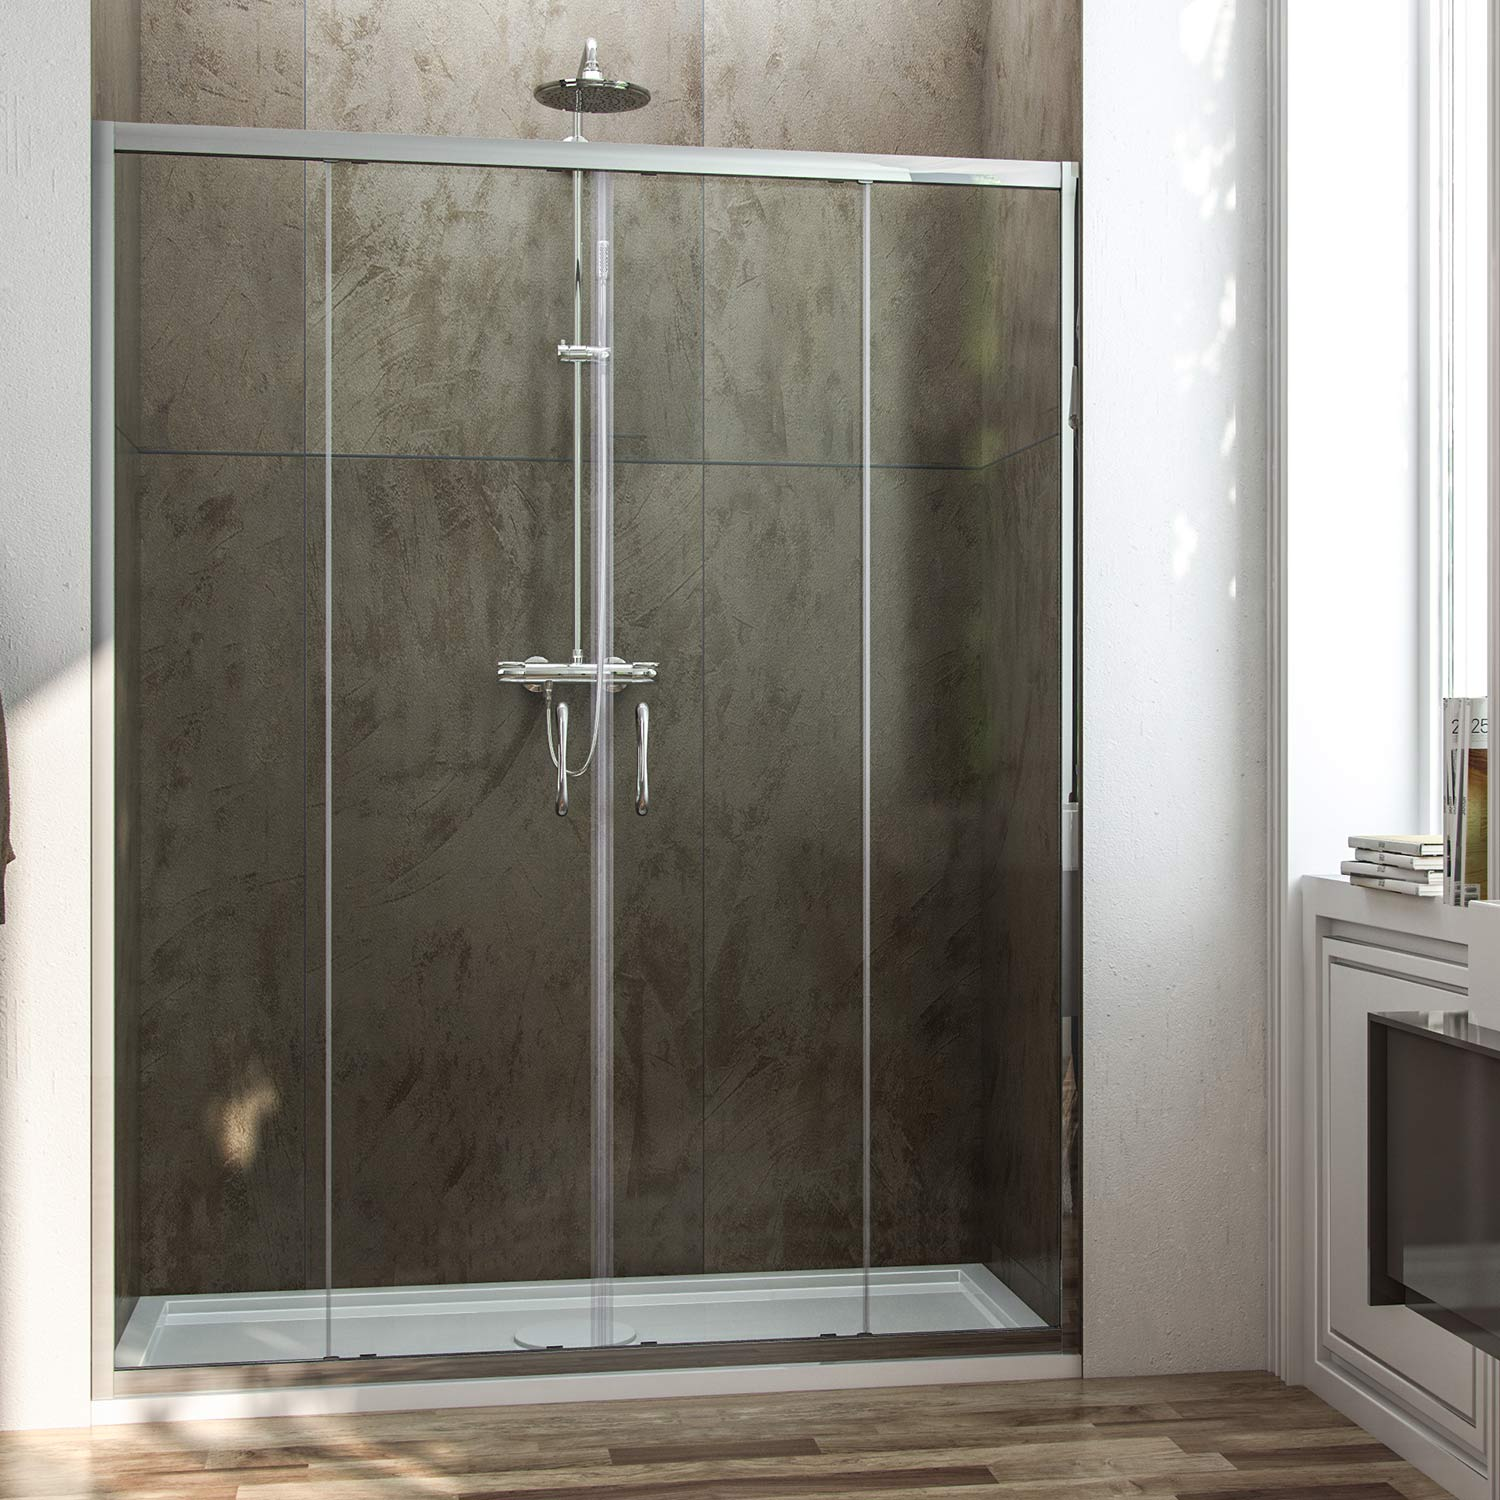 niche-shower-door-two-sliding-doors-pr018-3_1543847874_799